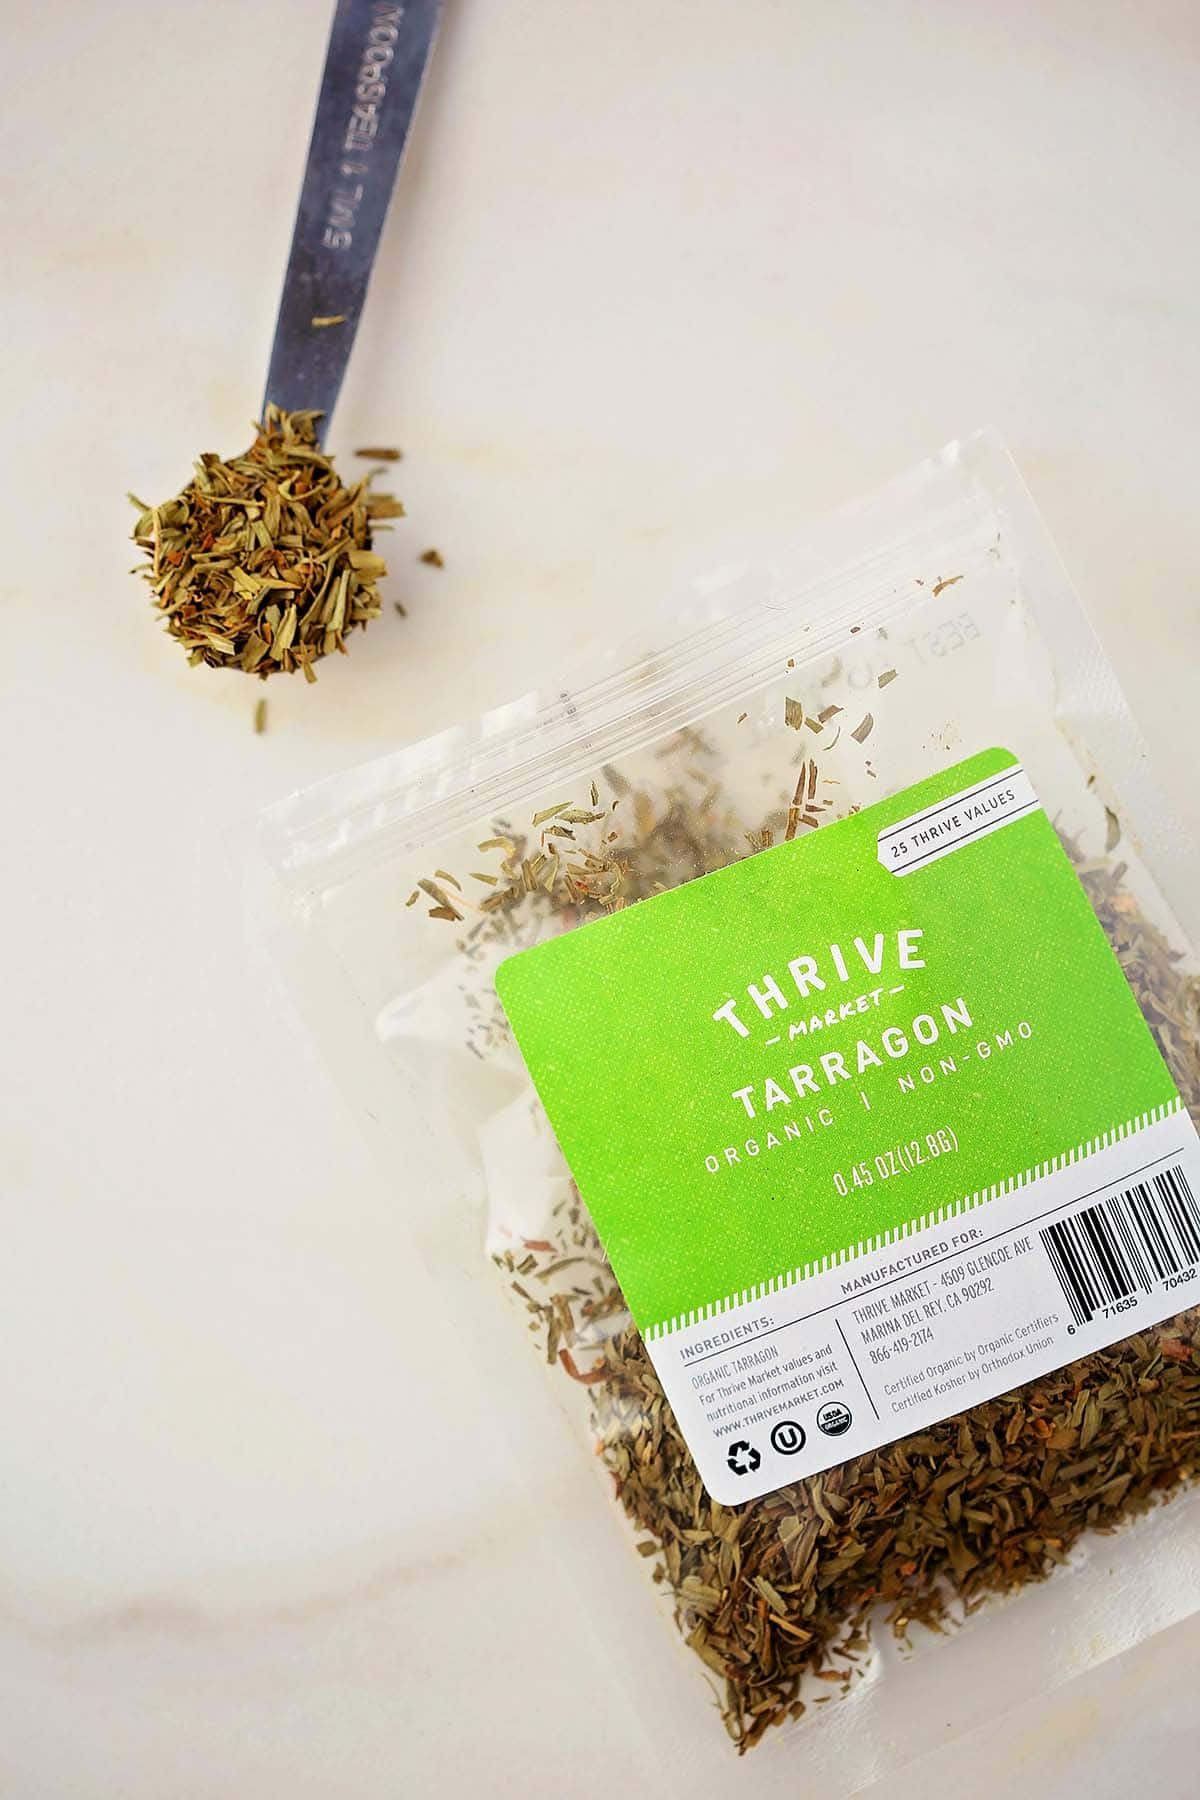 measuring spoon with dried spice and bag labeled tarragon spice